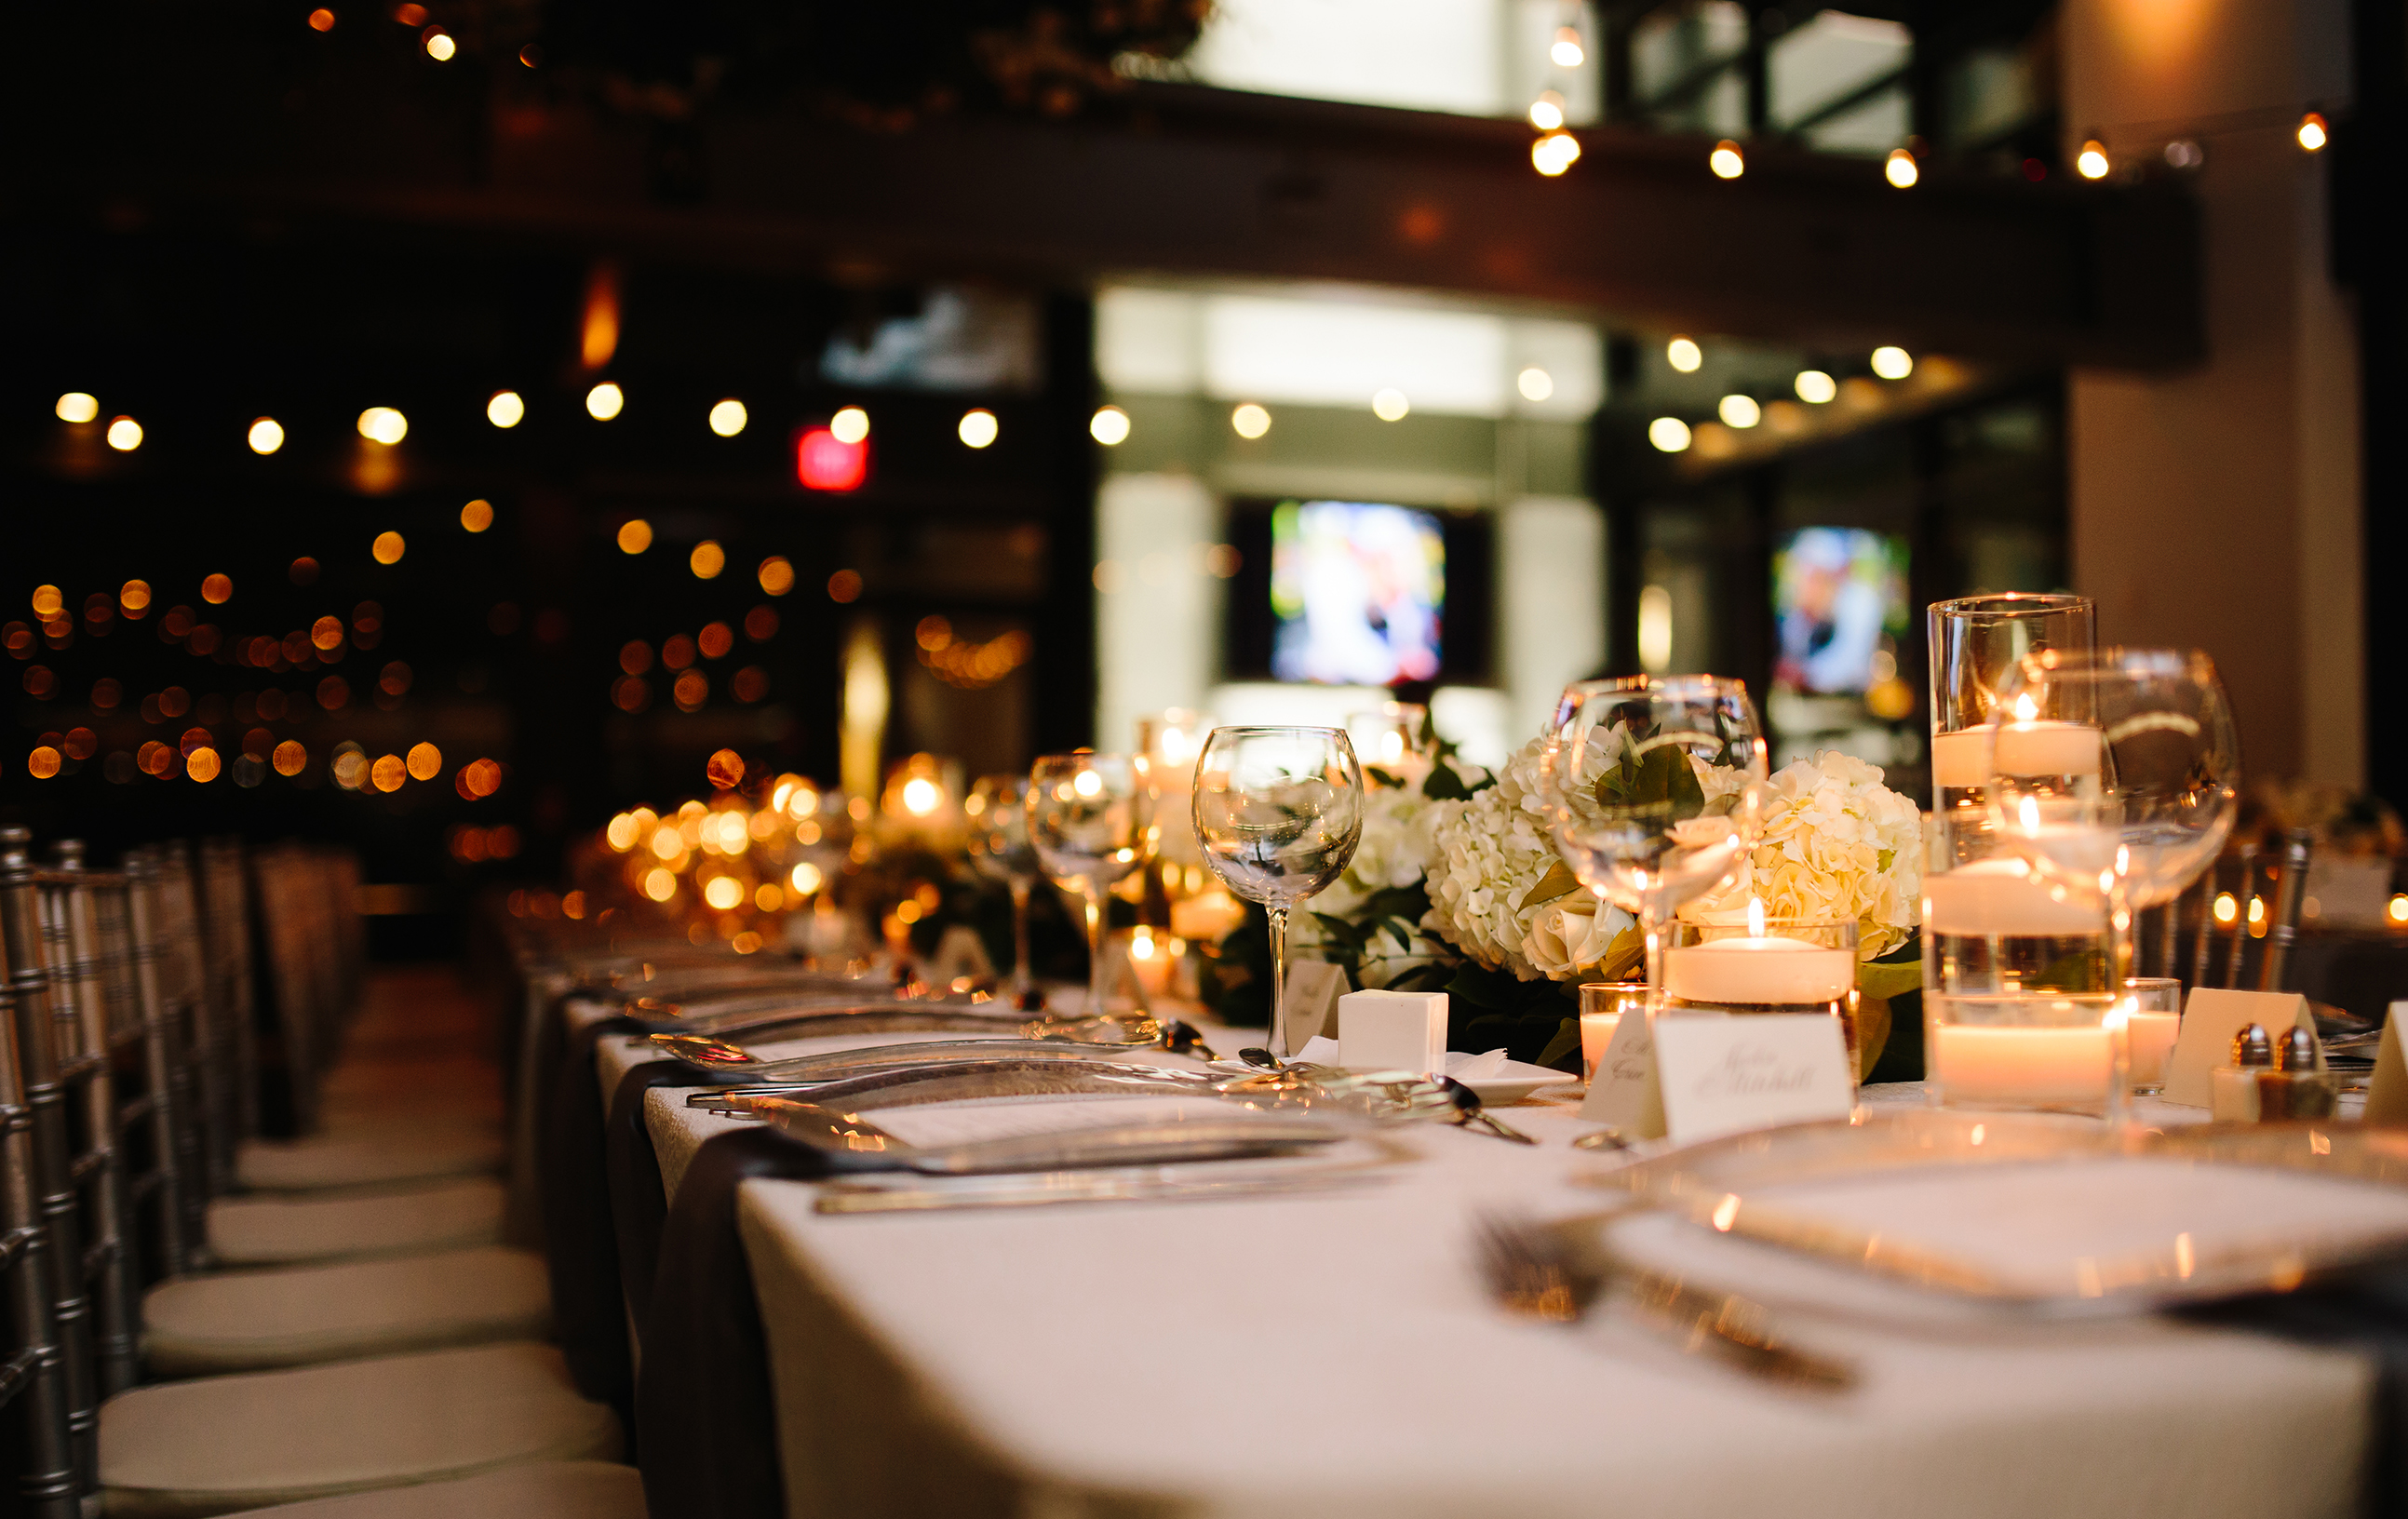 Charlotte and Taylor's Rehearsal Dinner at The Bridge Building